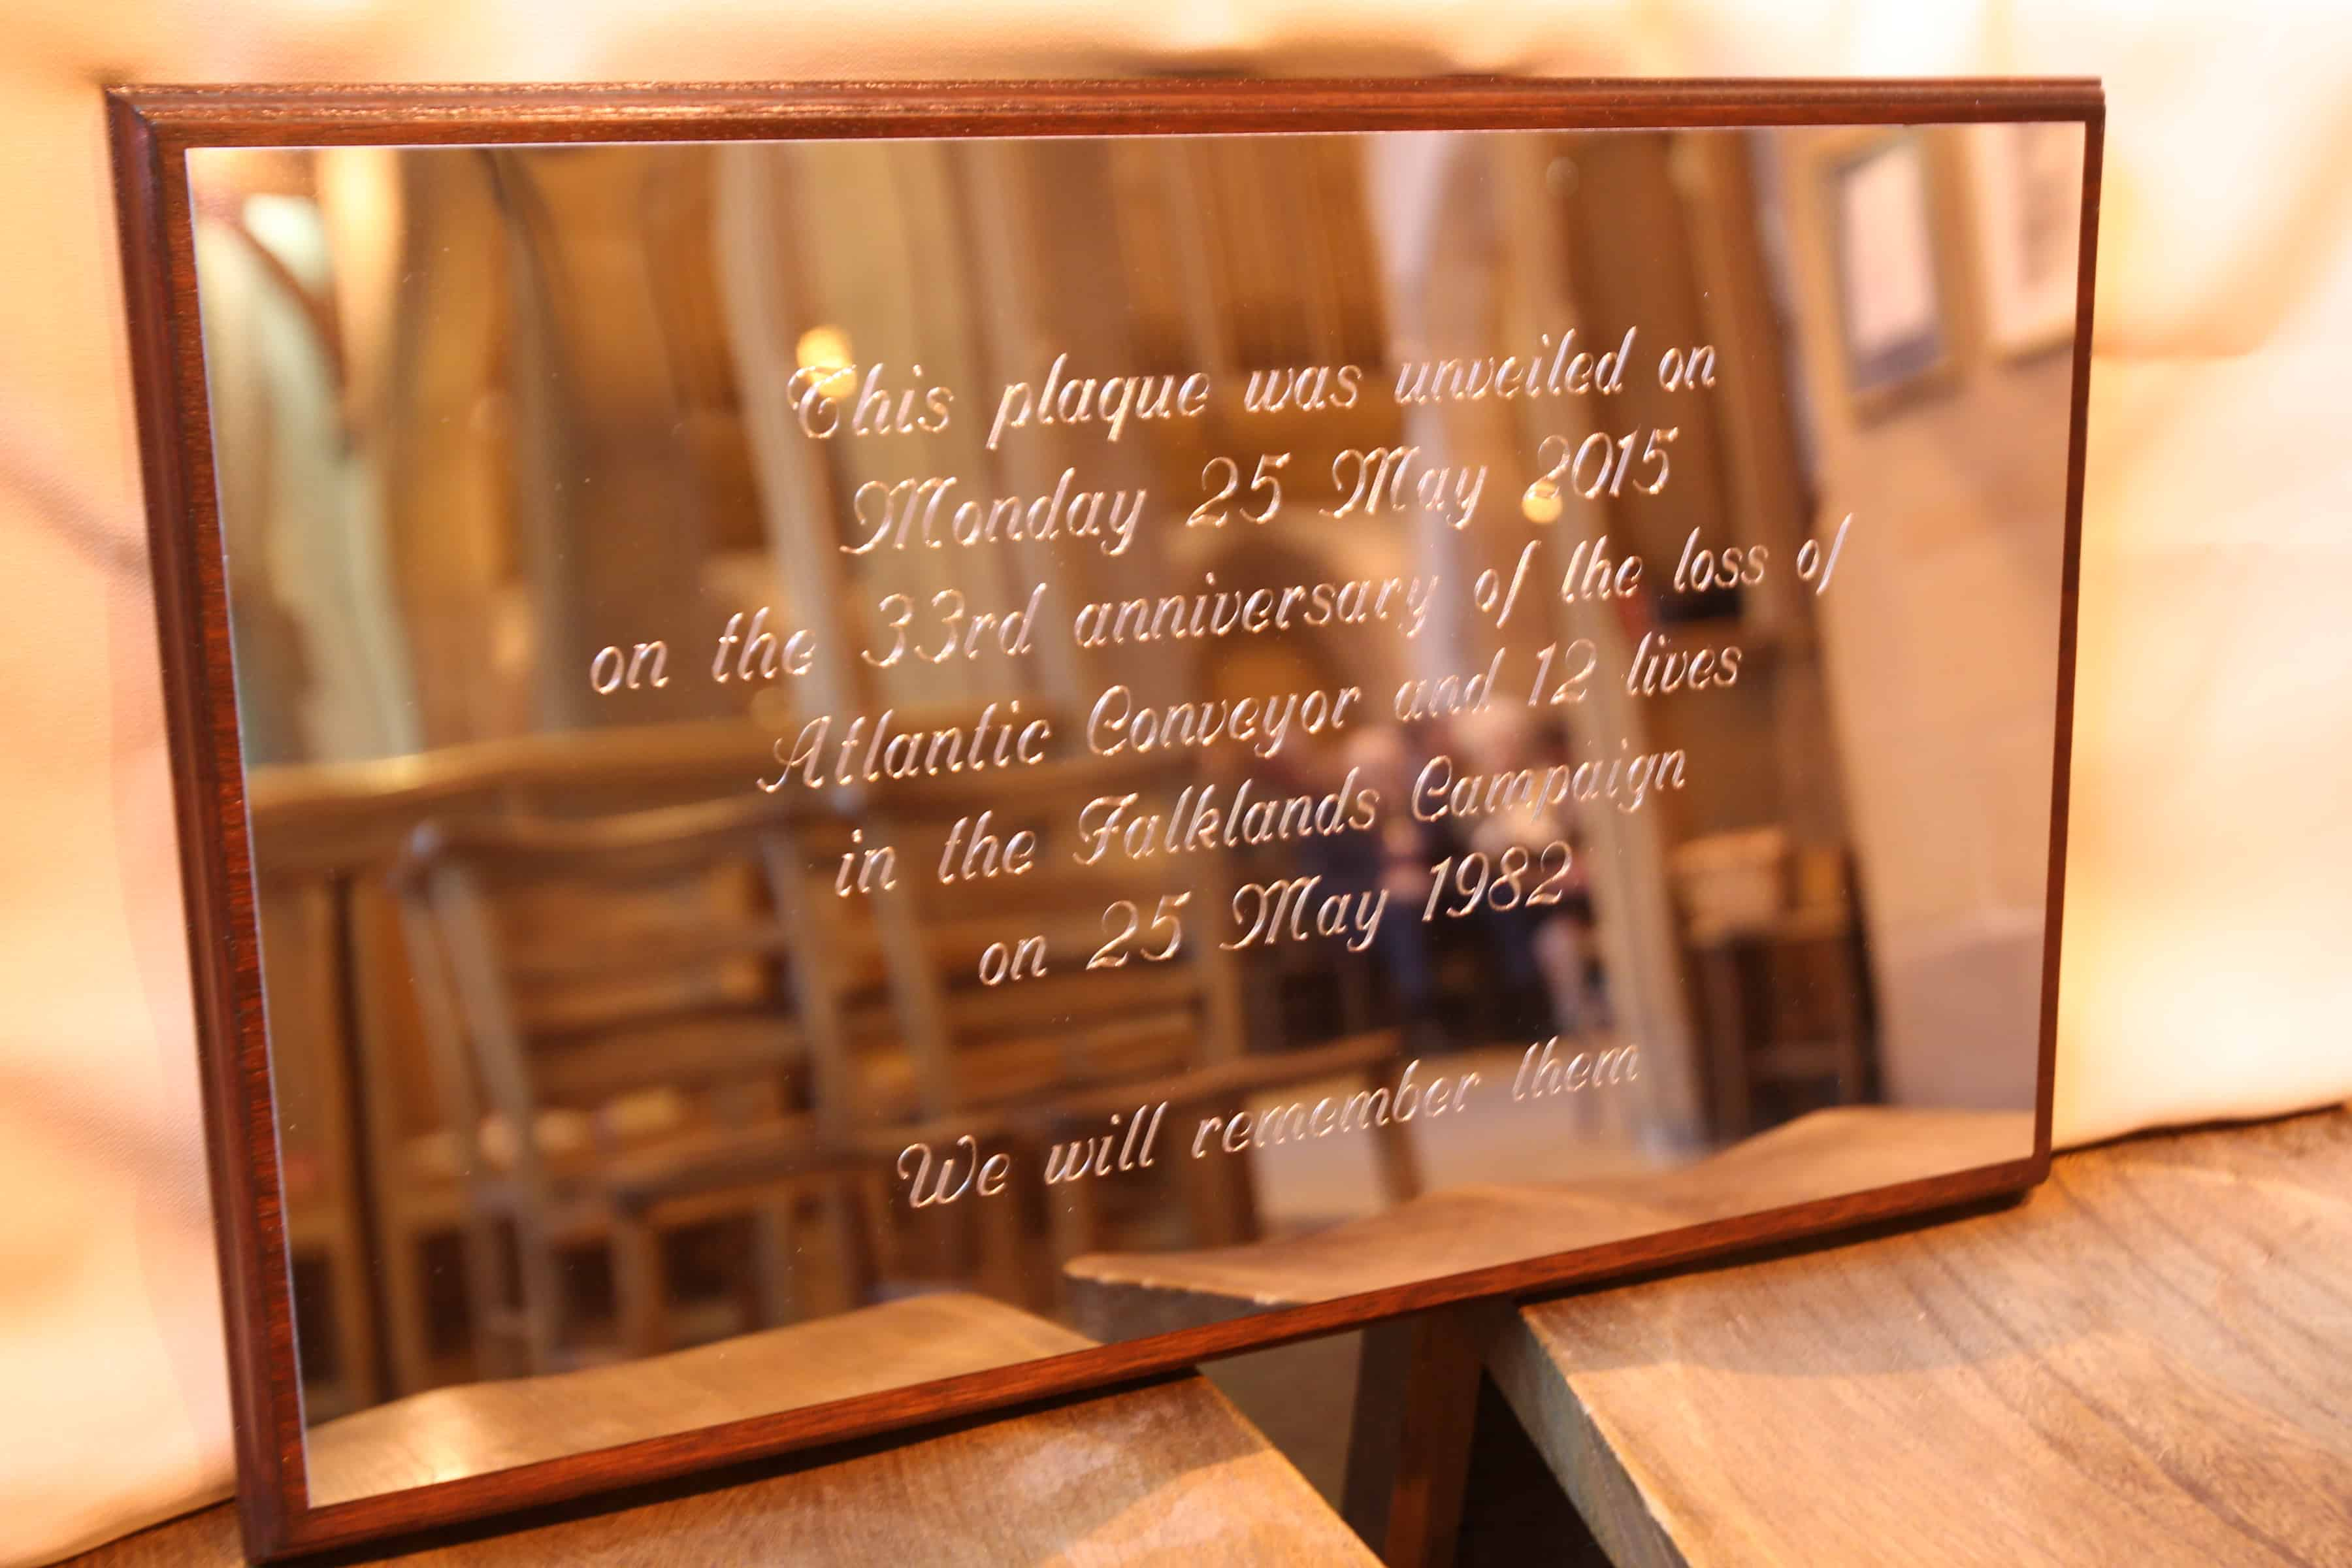 Service of Celebration as part of the Three Queens, Cunard 175th Anniversary at the Church of Our Lady and Saint Nicholas, Liverpool. Pictured: A memorial plaque dedicated to those who lost their lives on the Atlantic Conveyor, during the Falklands Conflict on 25th May 1982. Photo by Ian Cooper